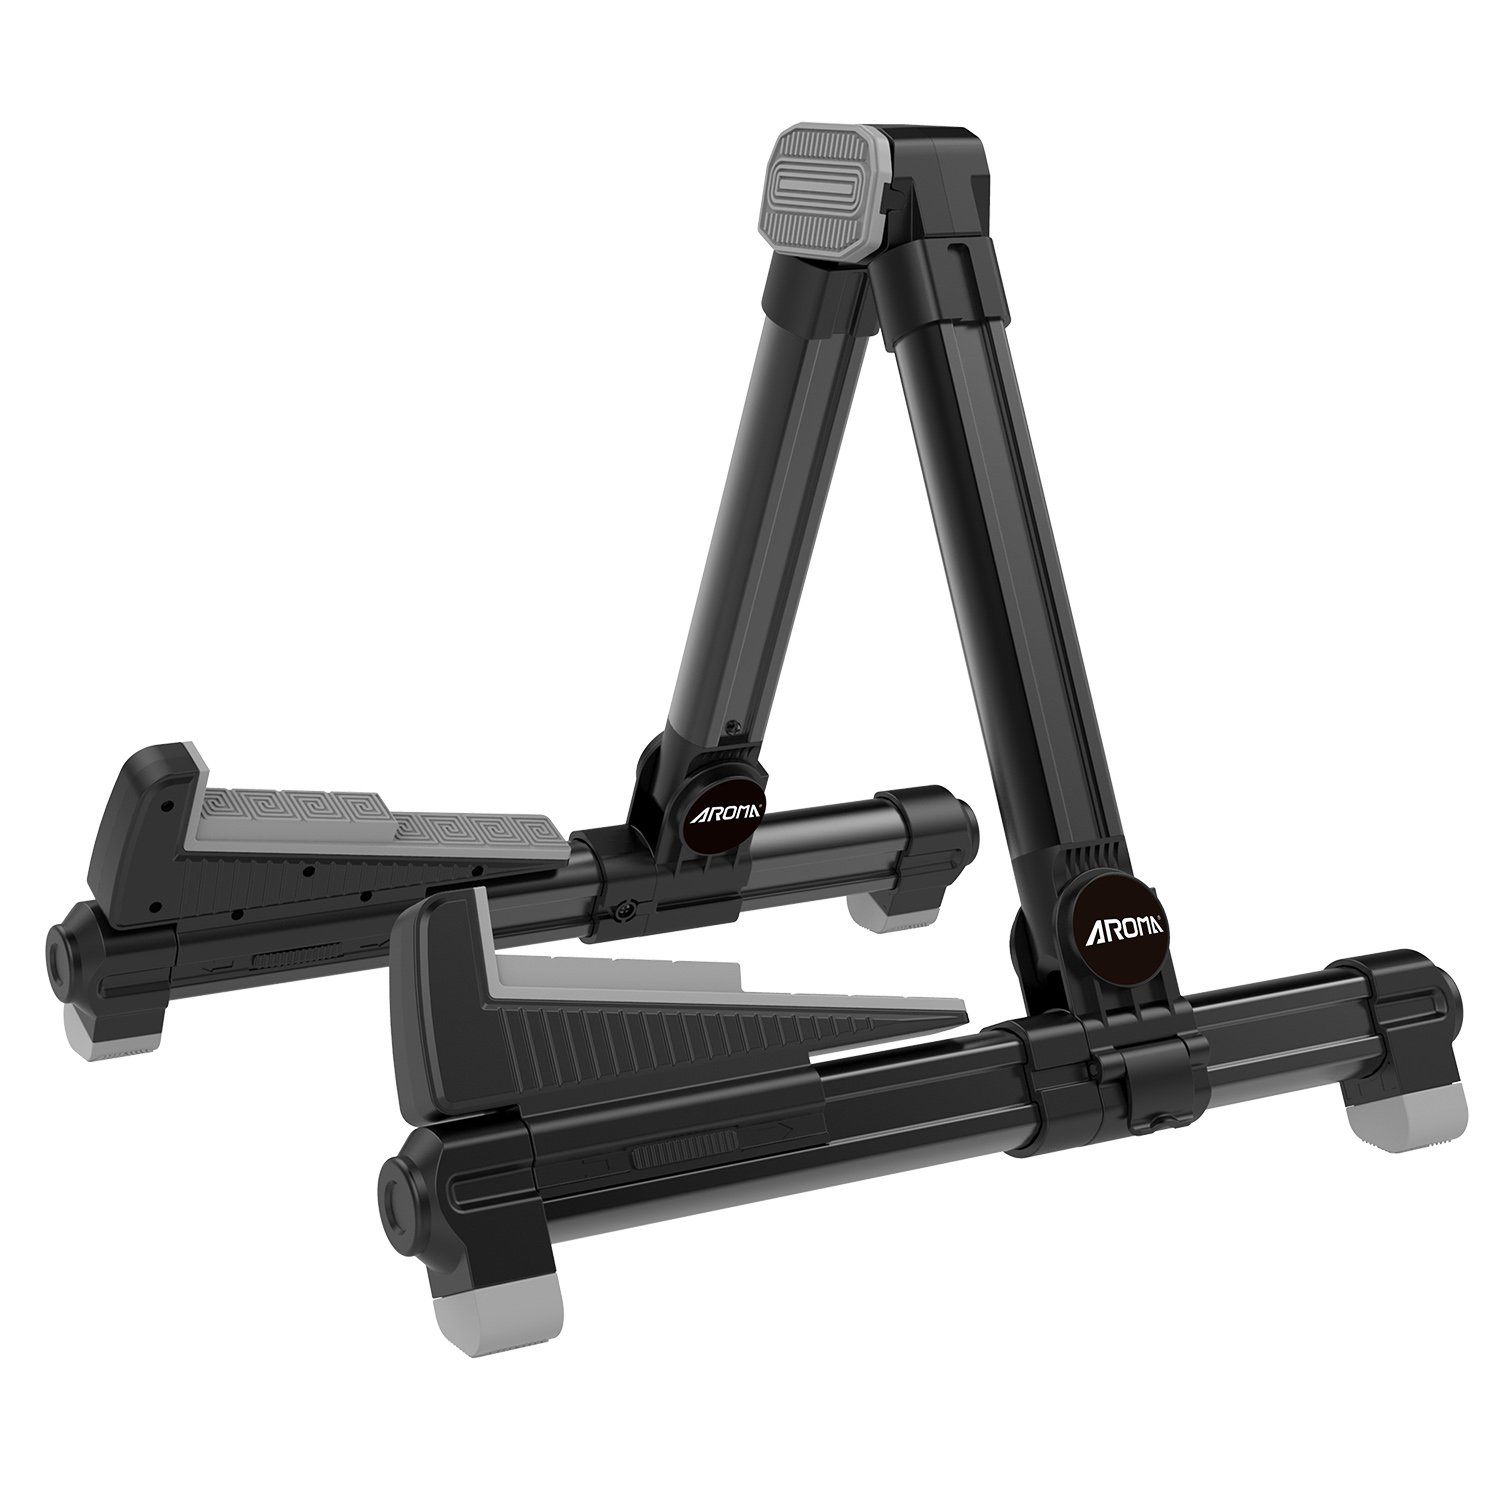 Guitar Stand Foldable Aluminum Floor Black AGS8 Adjustable for All Types of Guitars and Basses Foldable to Easily Carry Steady Stand Safe Protection by Aroma